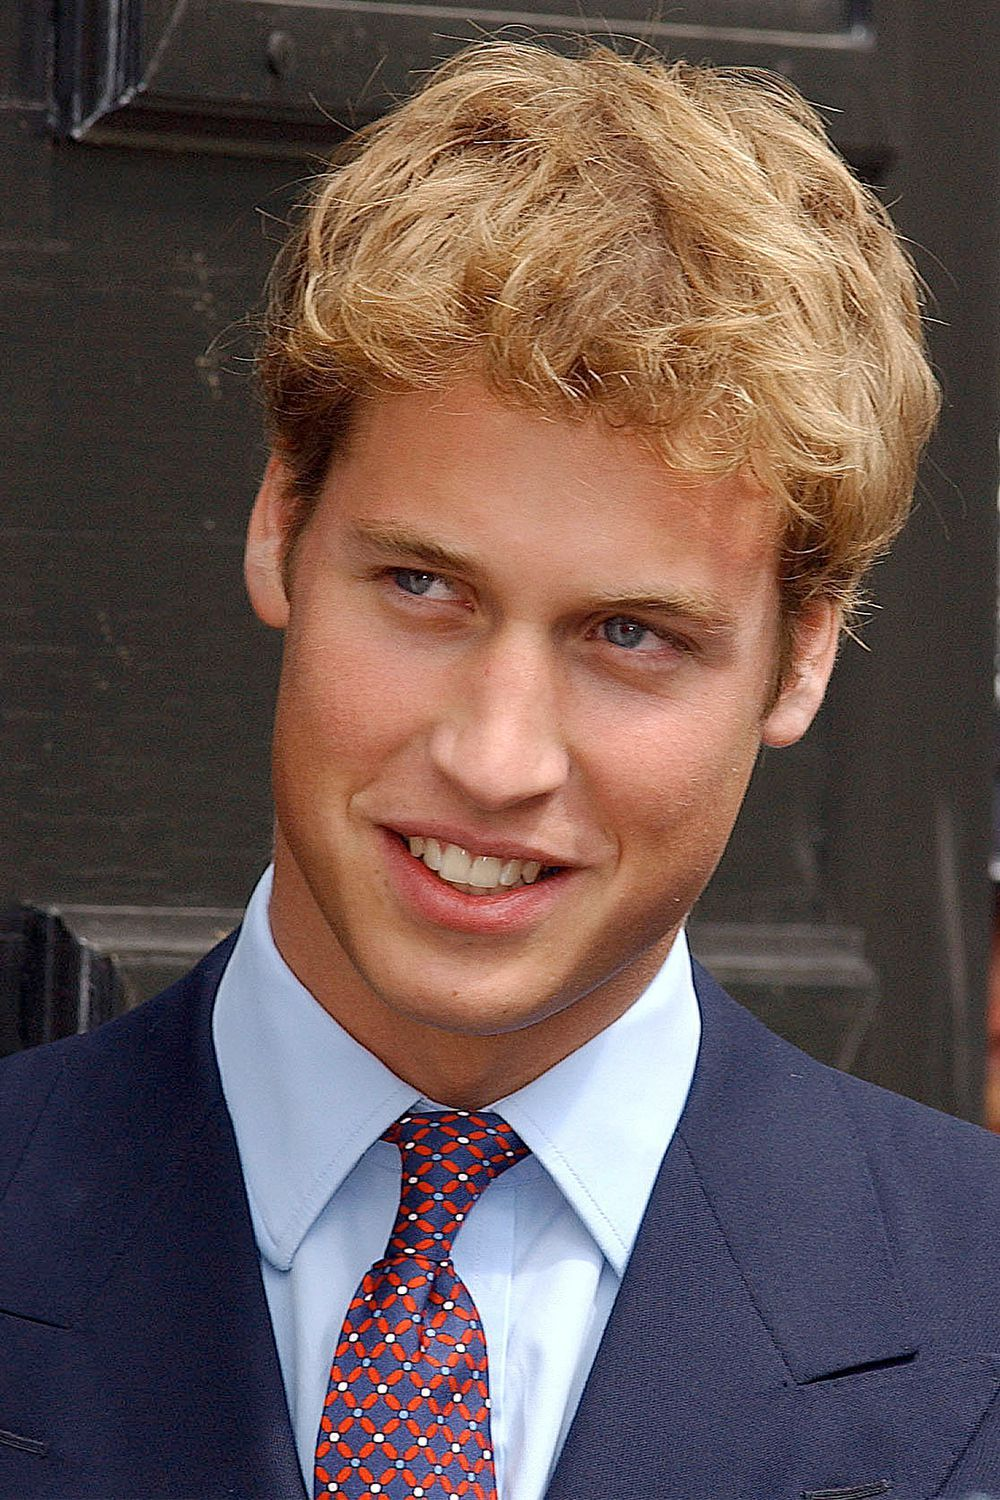 Behold 33 Iconic Photos of Prince William Through the